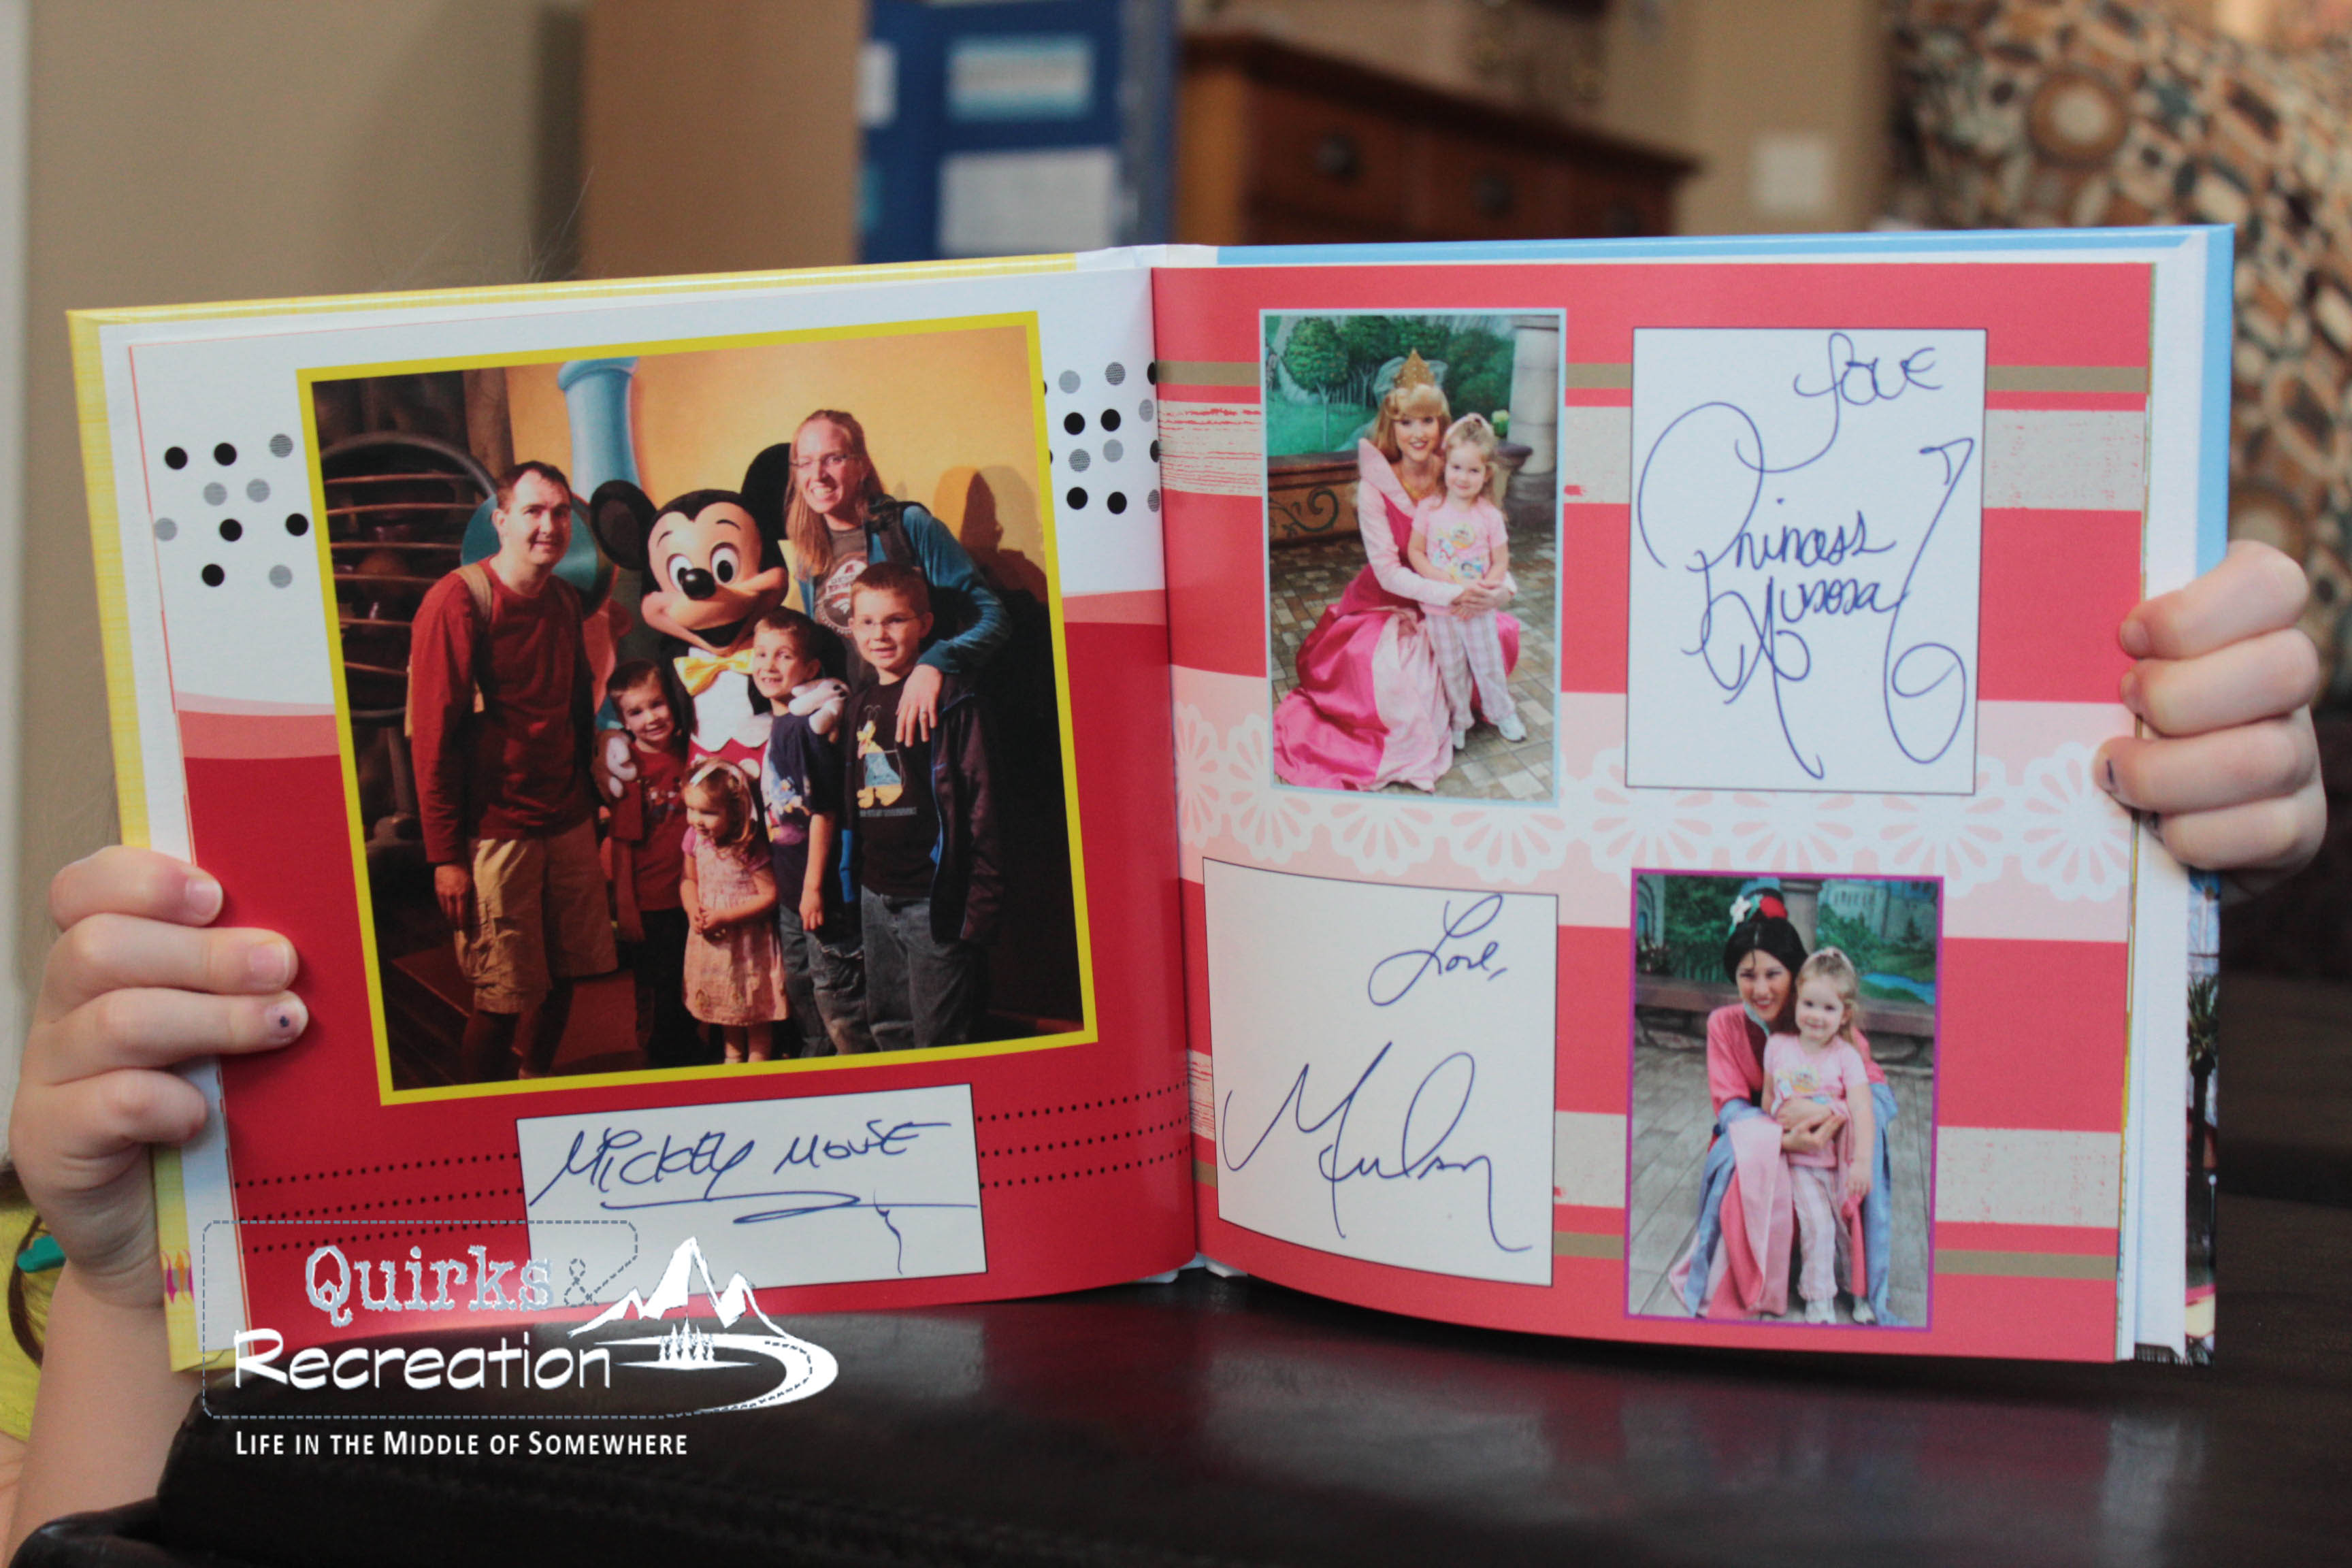 Mickey Mouse and princess photos and autographs